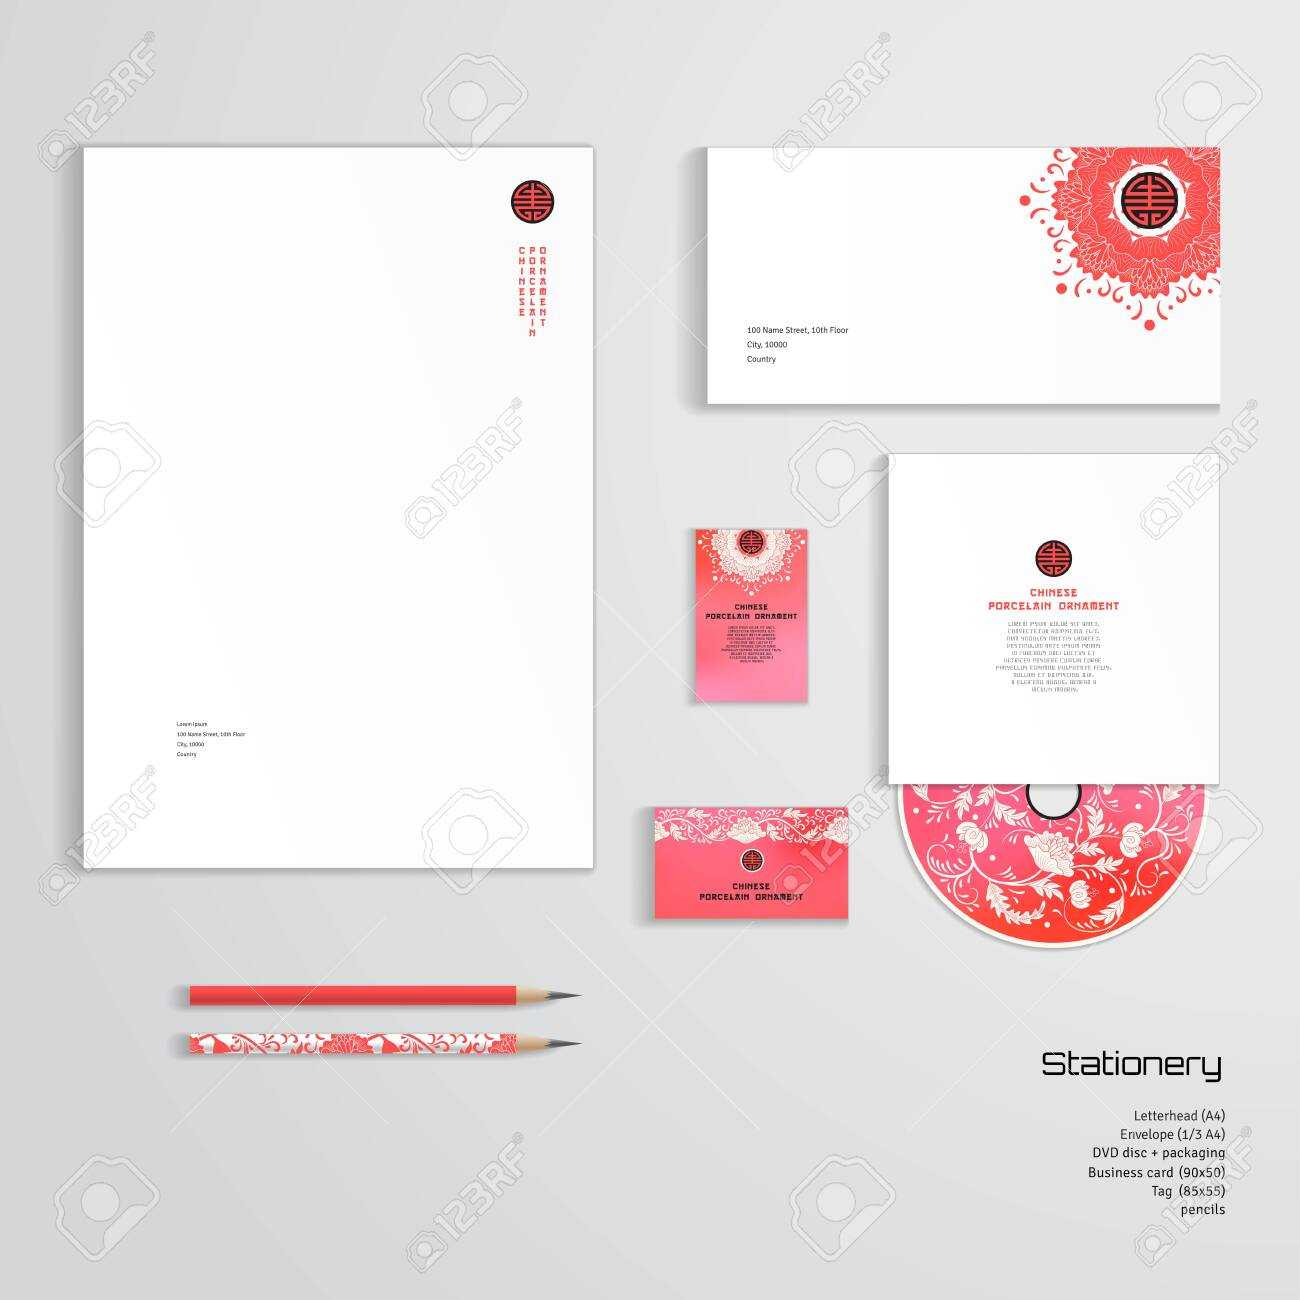 Vector Identity Templates. Letterhead, Envelope, Business Card,.. Inside Business Card Letterhead Envelope Template